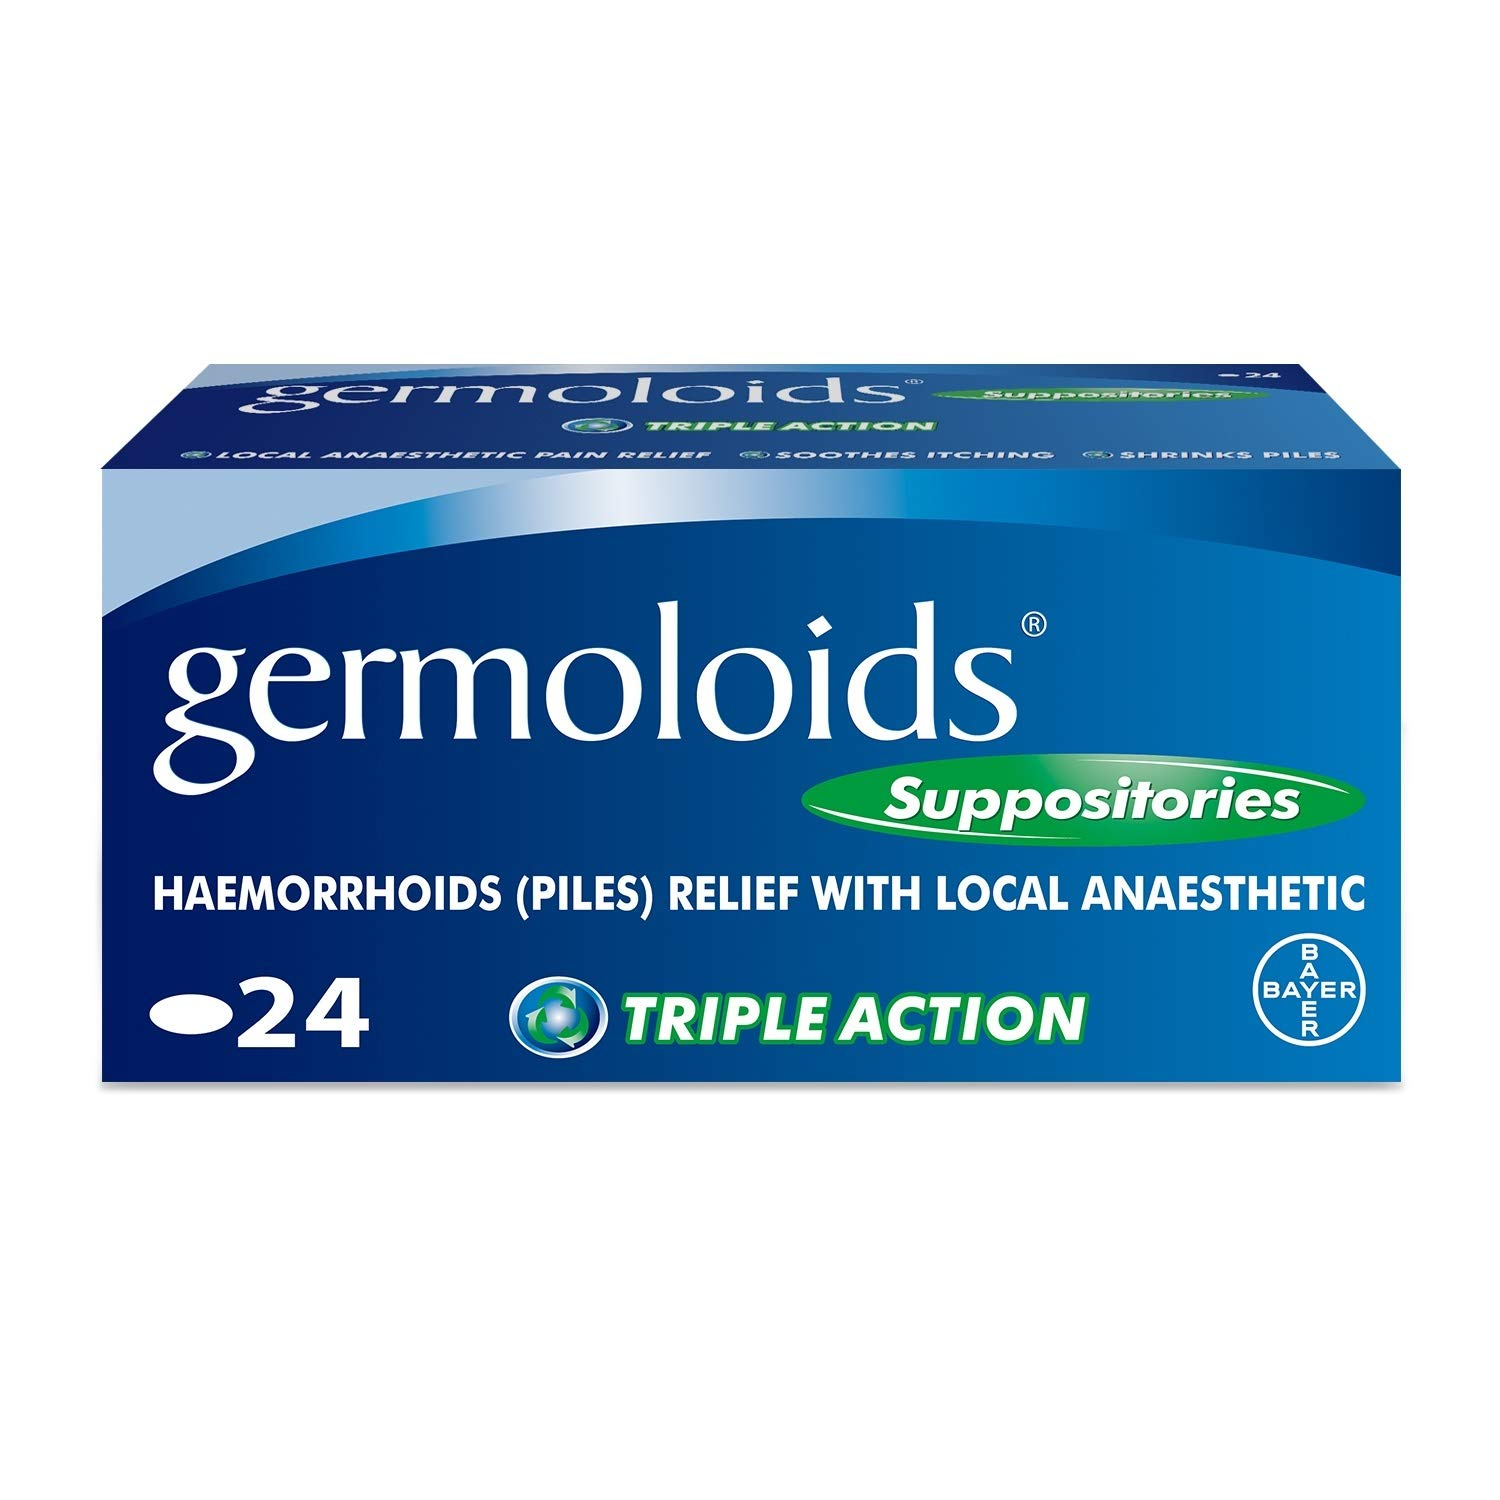 Germoloids Hemorrhoid Treatment & Piles Treatment Suppositories, Triple Action with Anaesthetic to Numb the Pain & Itch, 55 g, 1 Pack of 24